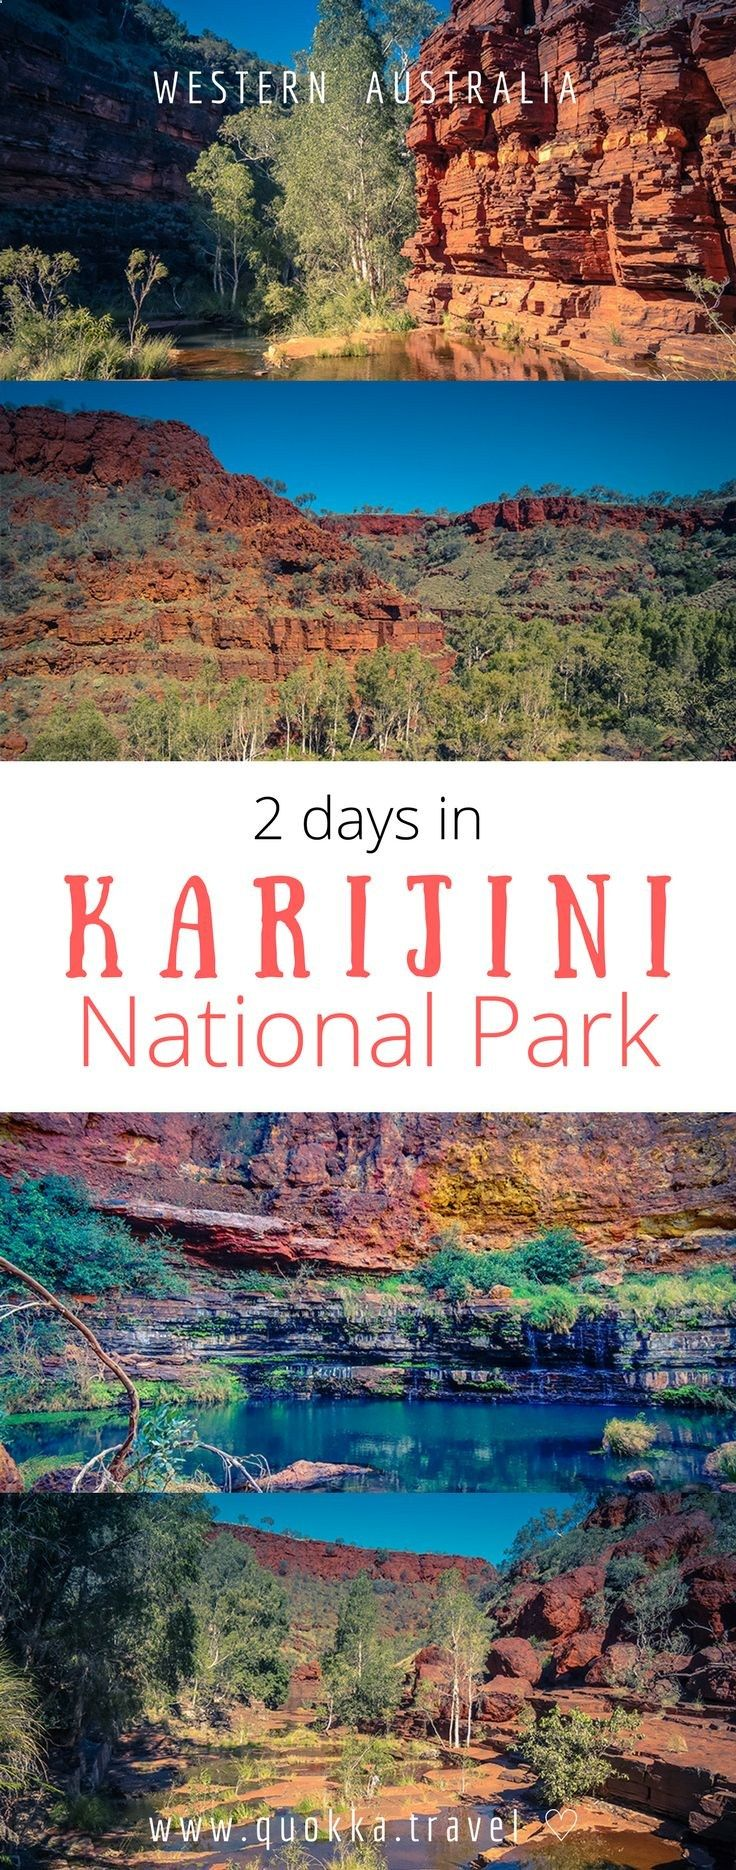 Karijini is Western Australias second largest park and offers many adventurous things to those who love nature. The huge red mountain formations, waterfalls and breathtaking gorges are stunning. It is fair to say that Karijini has been one of the most beautiful destinations I have been to in Australia. In this post we share why should you visit Karijini in Western Australia, including what to do in two days. We also share all about hiking and hiking trail in Karijini National Park and ...